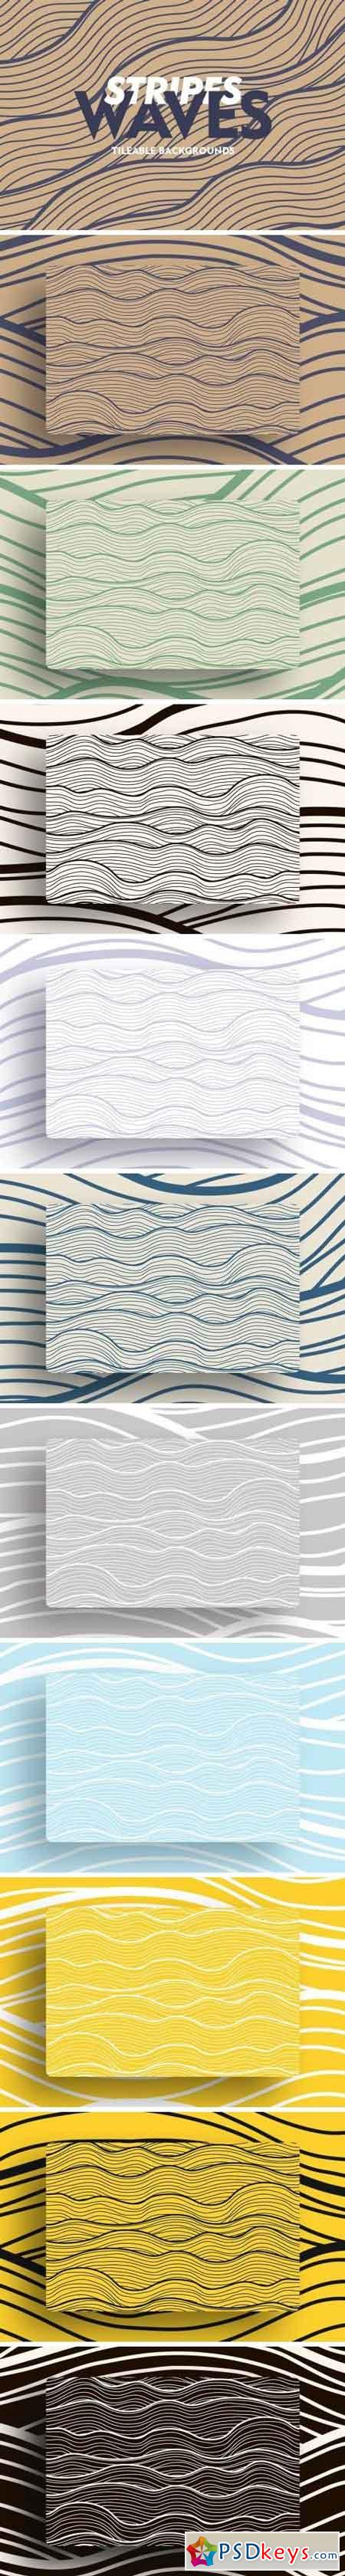 Stripe Waves Tileable Backgrounds